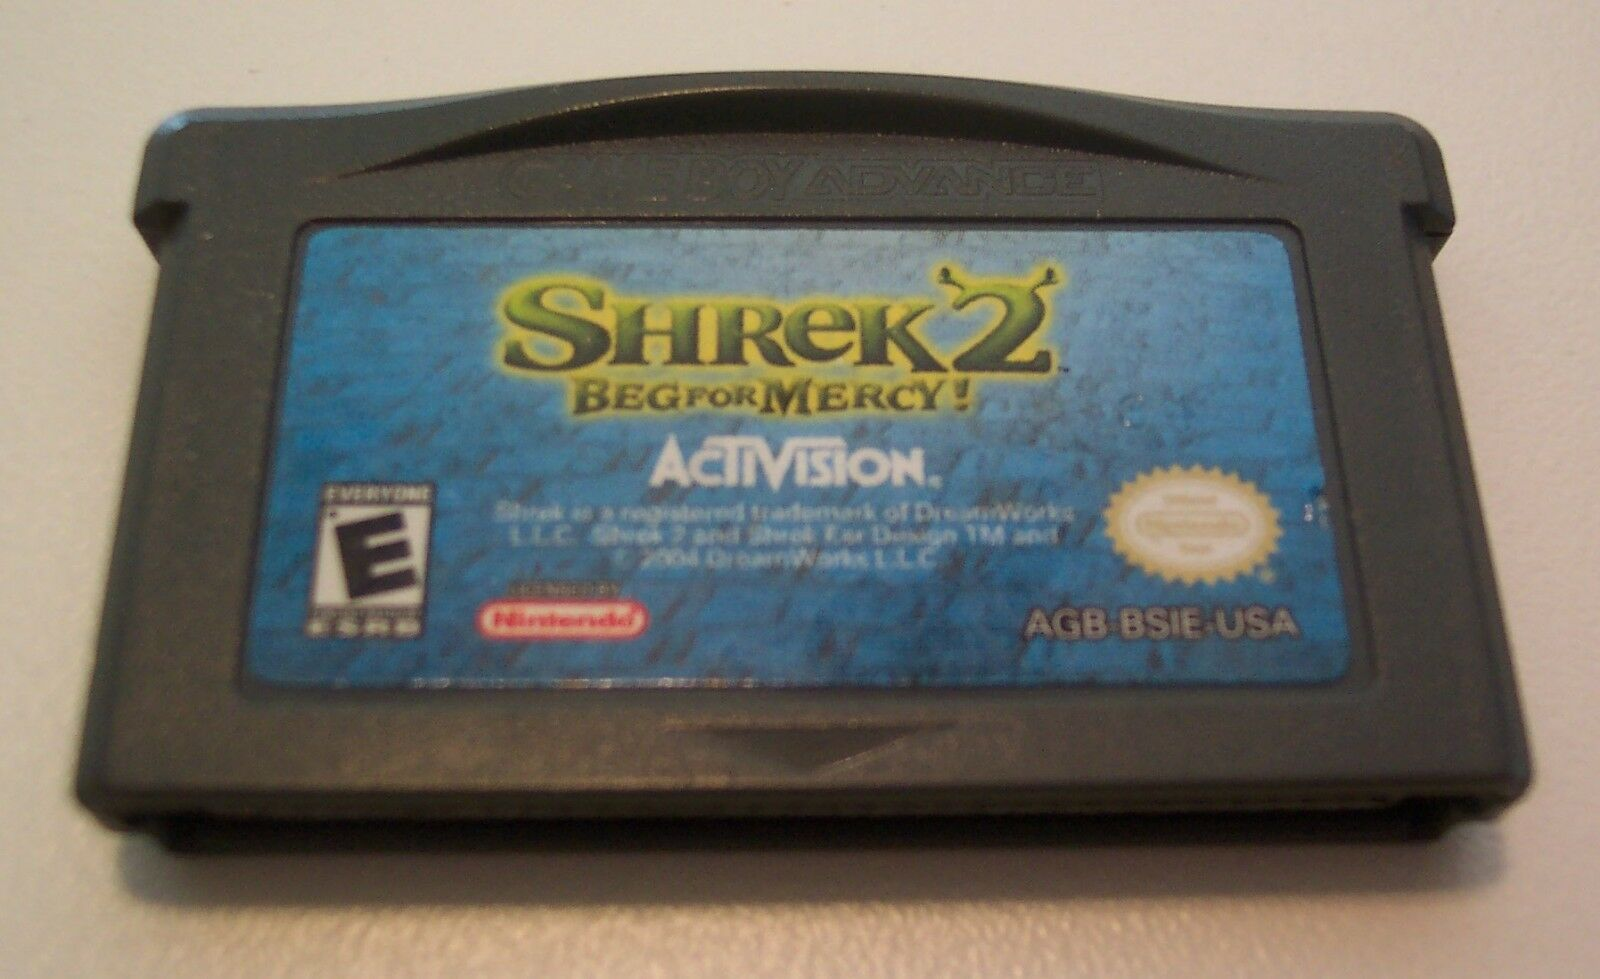 SHREK 2 Beg For Mercy NINTENDO GAME BOY ADAVANCE GAME CART ONLY 2004